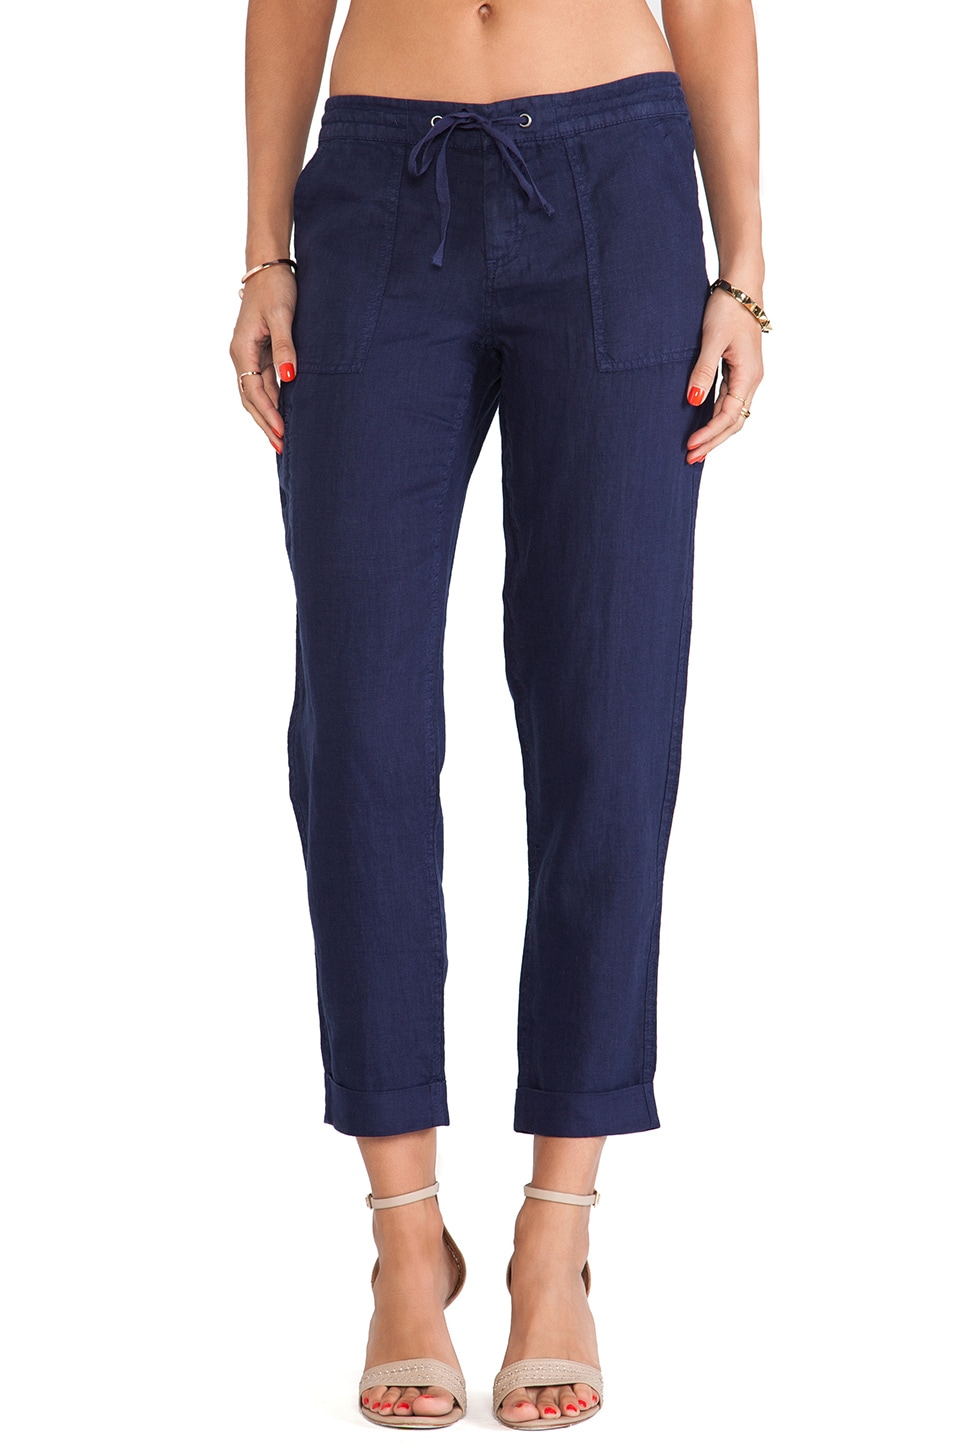 Joie Alaine Straight Leg Pants in Dark Navy